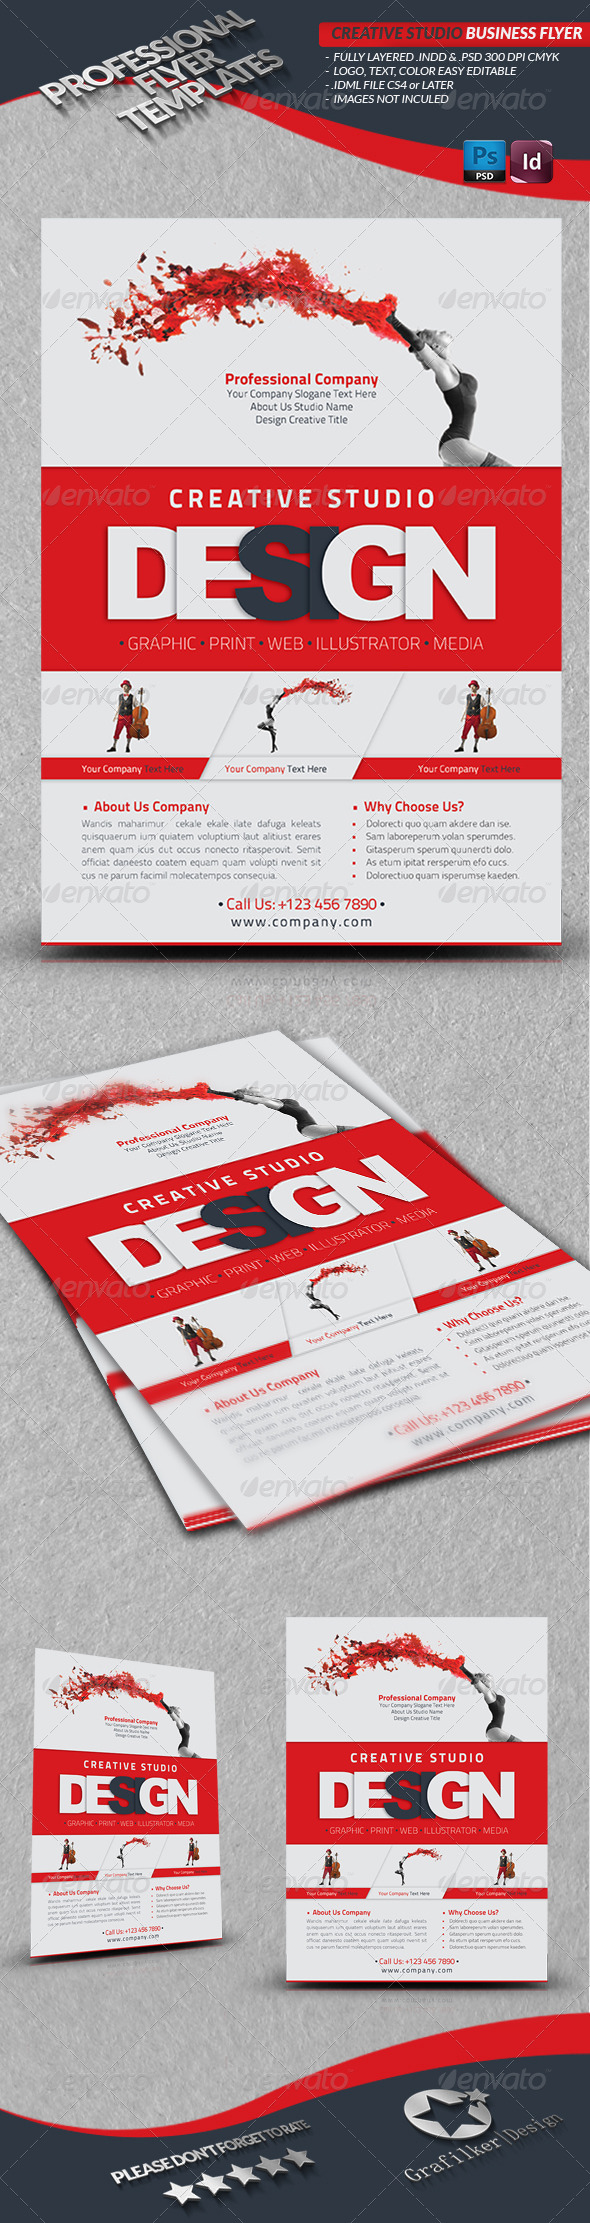 Creative Studio Business Flyer - Corporate Flyers